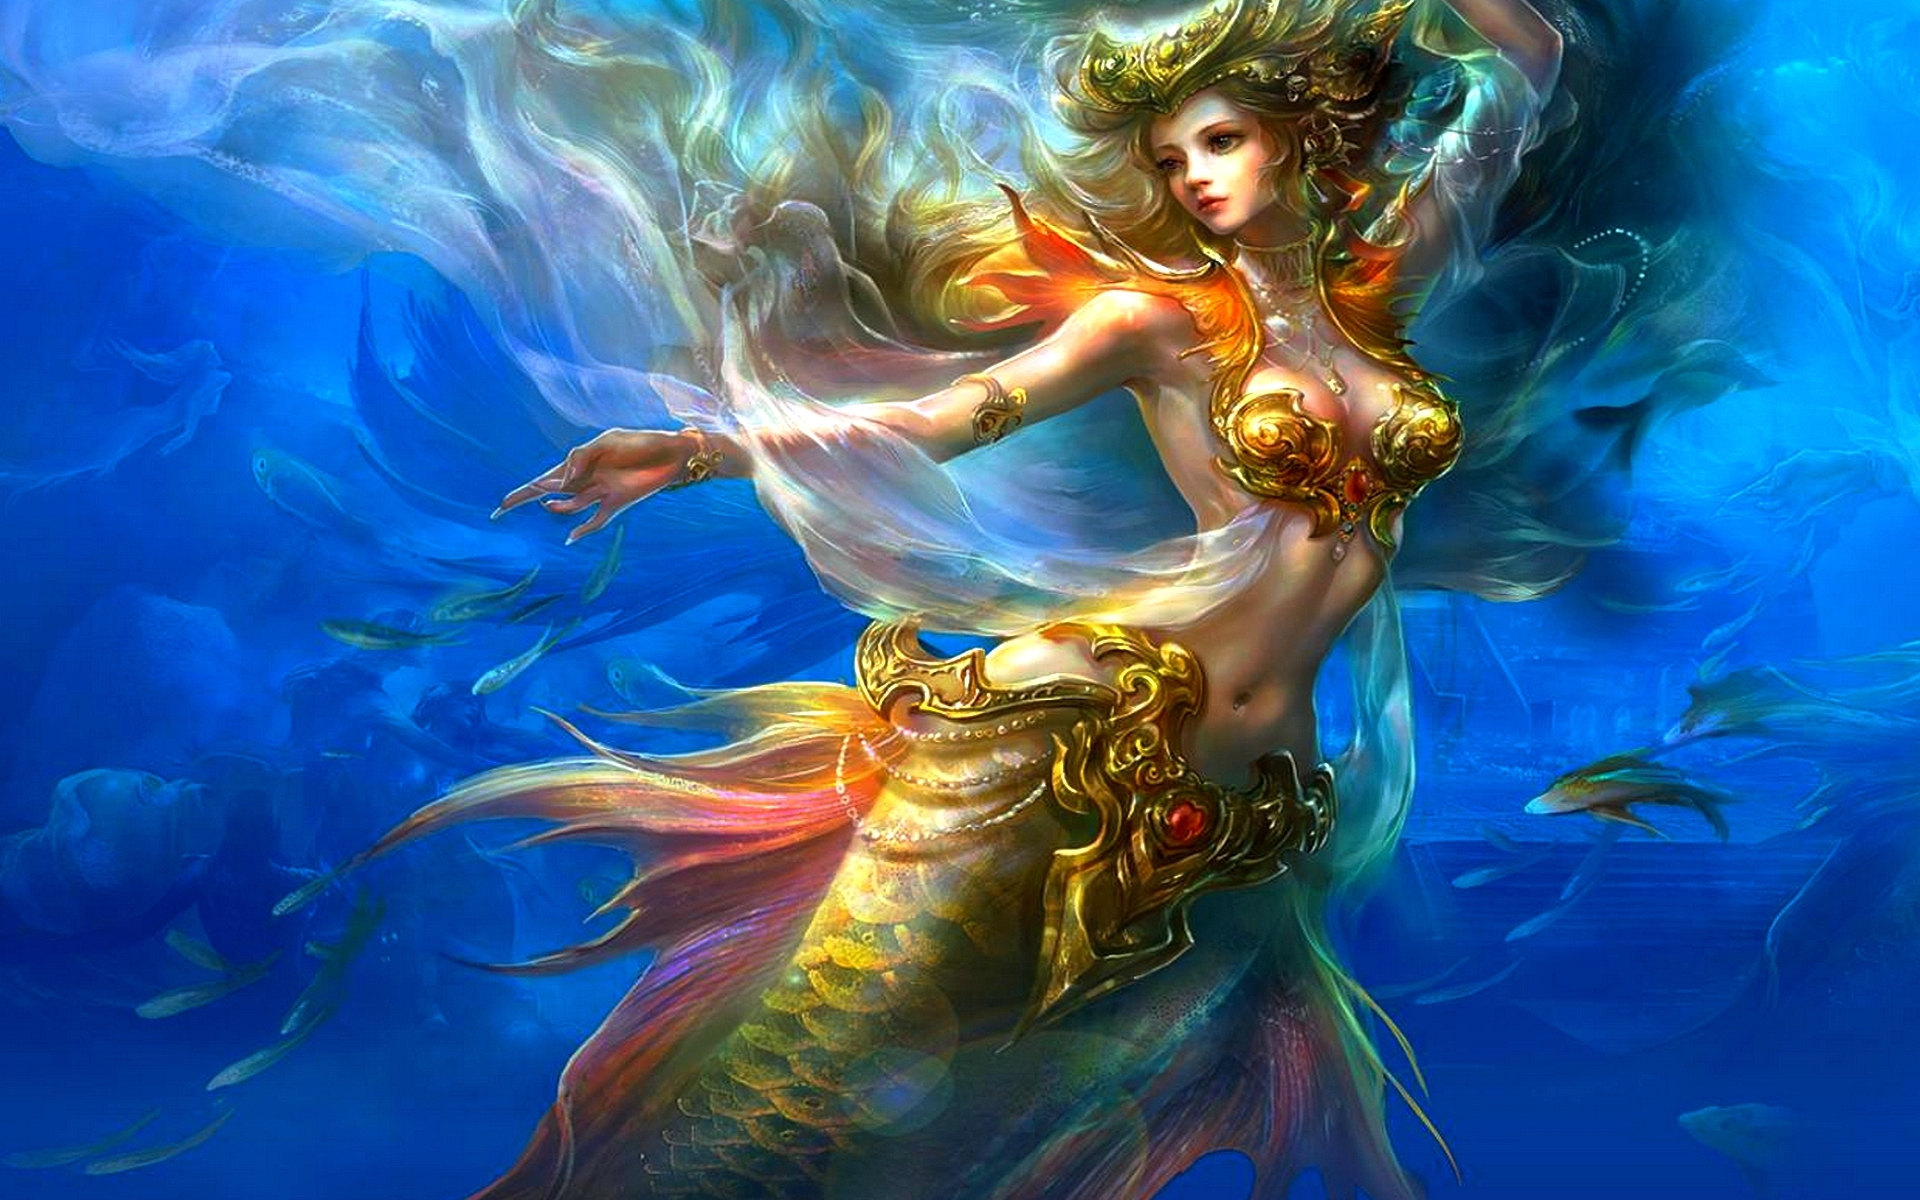 mermaid desktop background wallpaper high definition